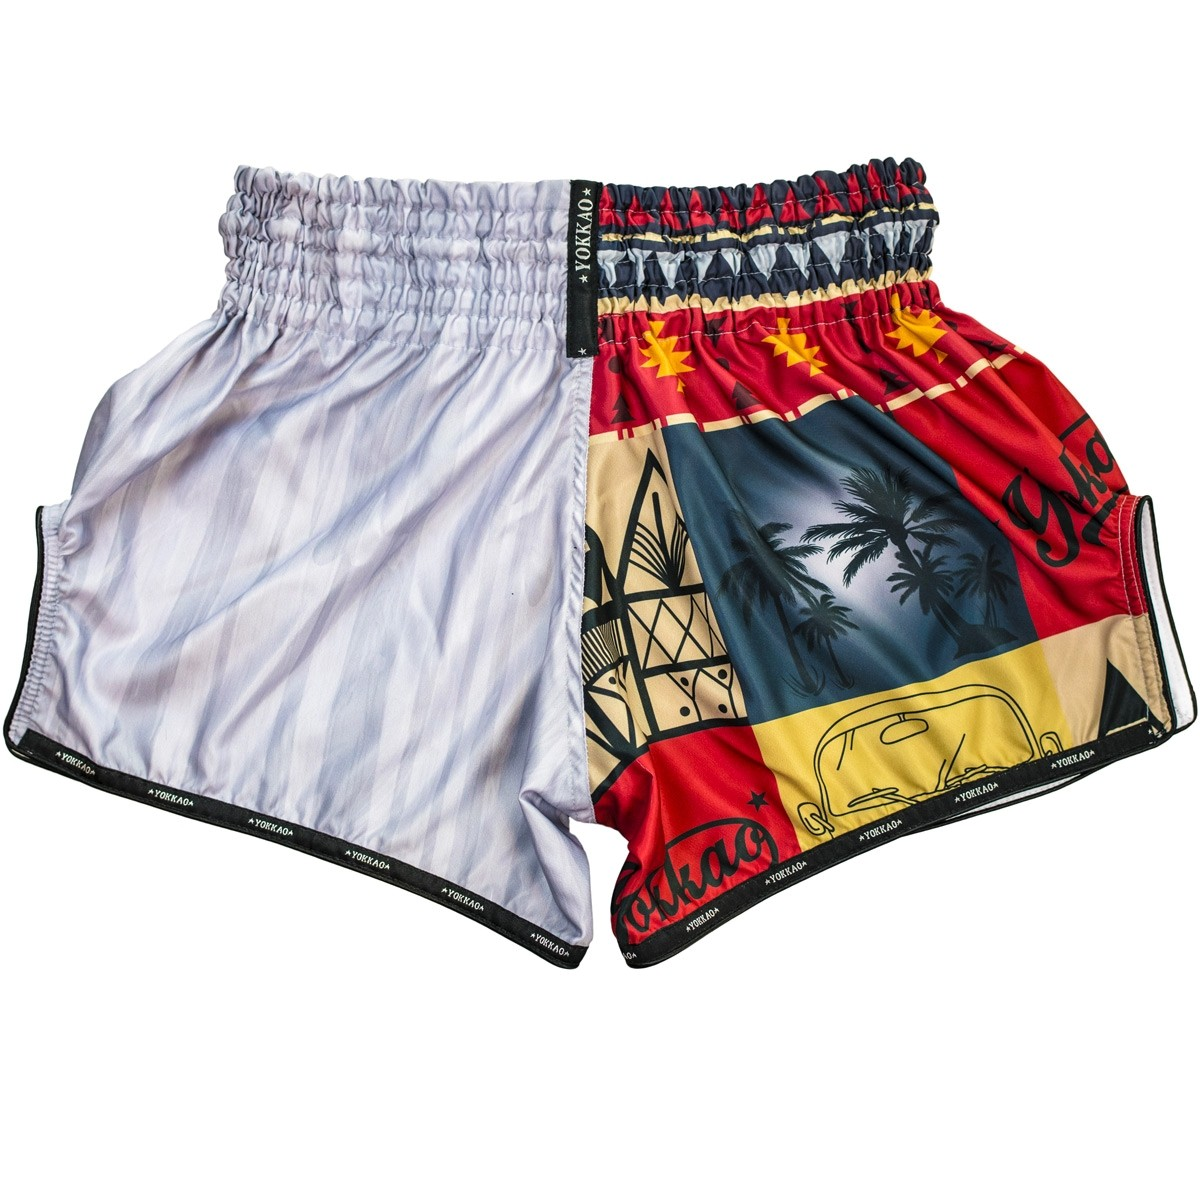 carbonfit-freedom-shorts-557